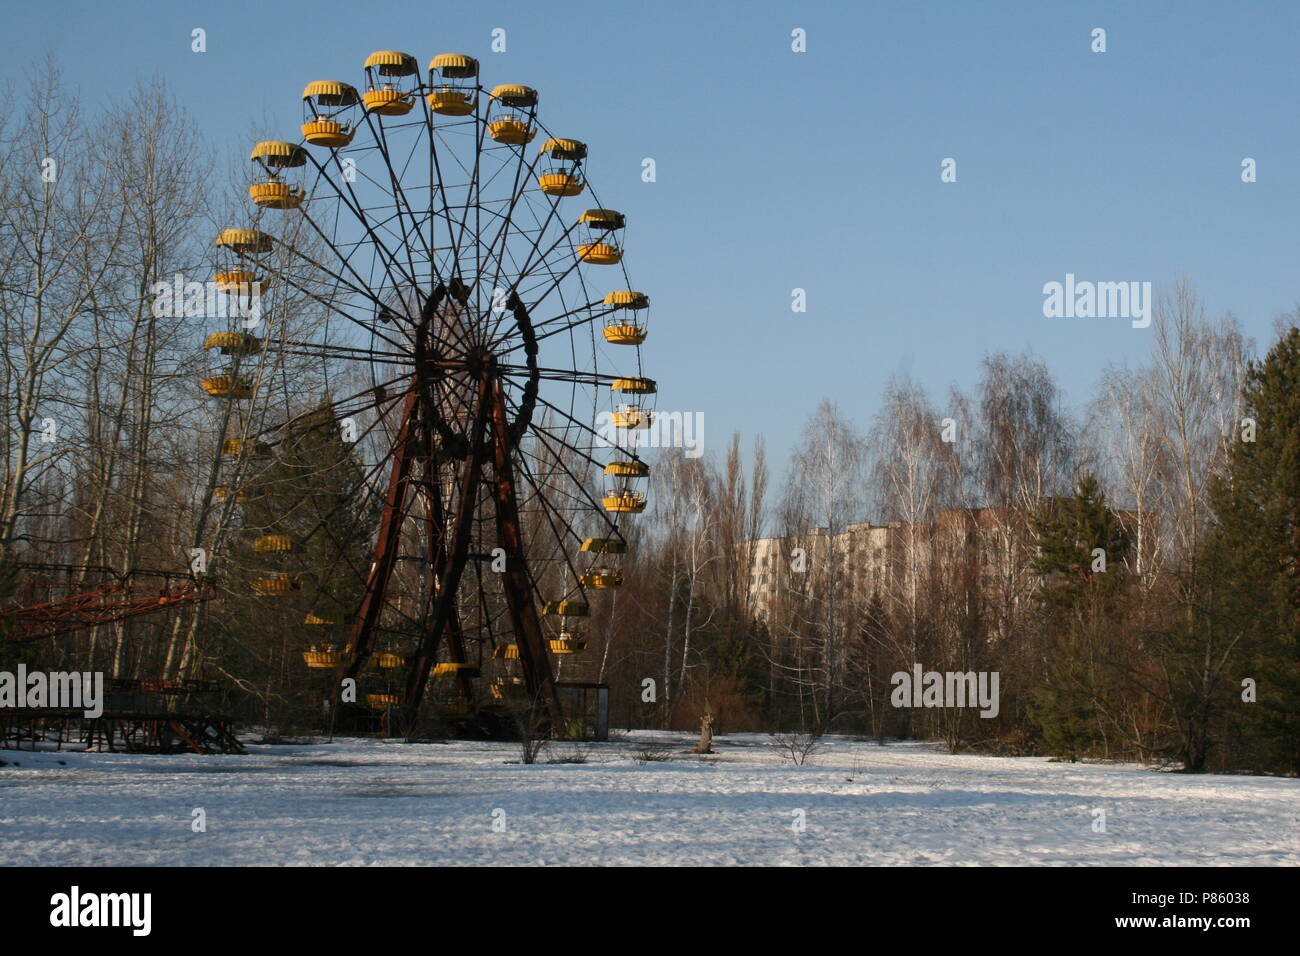 Ferris Wheel in the abandoned city of Pripyat - Inside the exclusion zone at Chernobyl - Stock Image